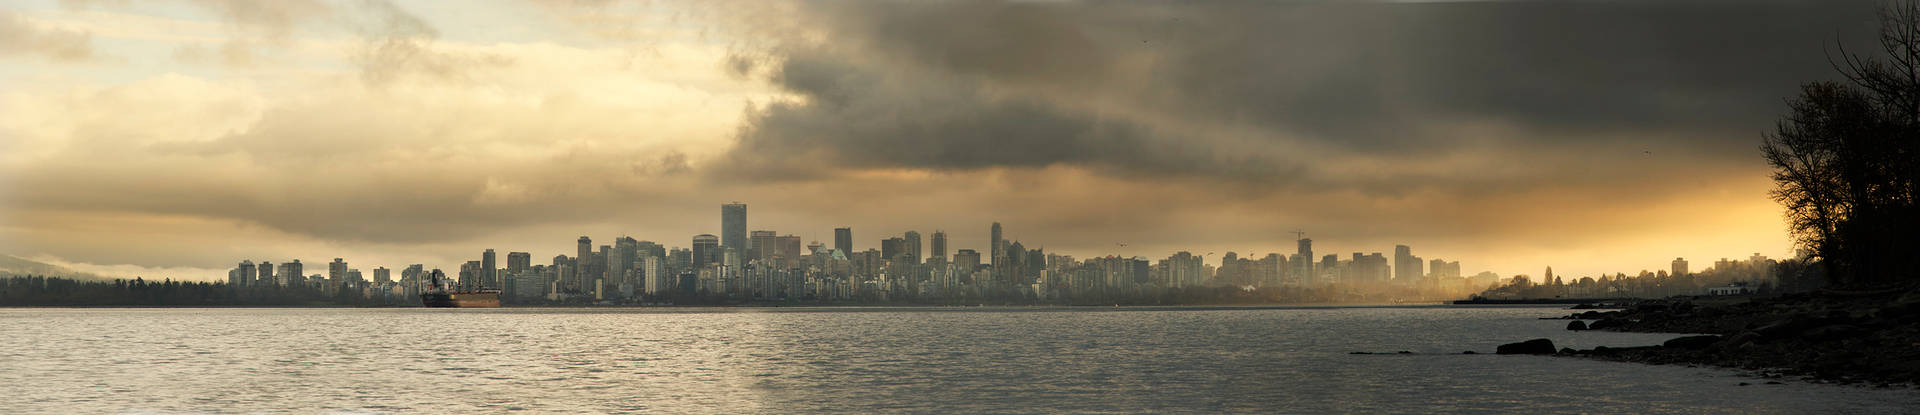 Vancouver 1 by Jim Friesen